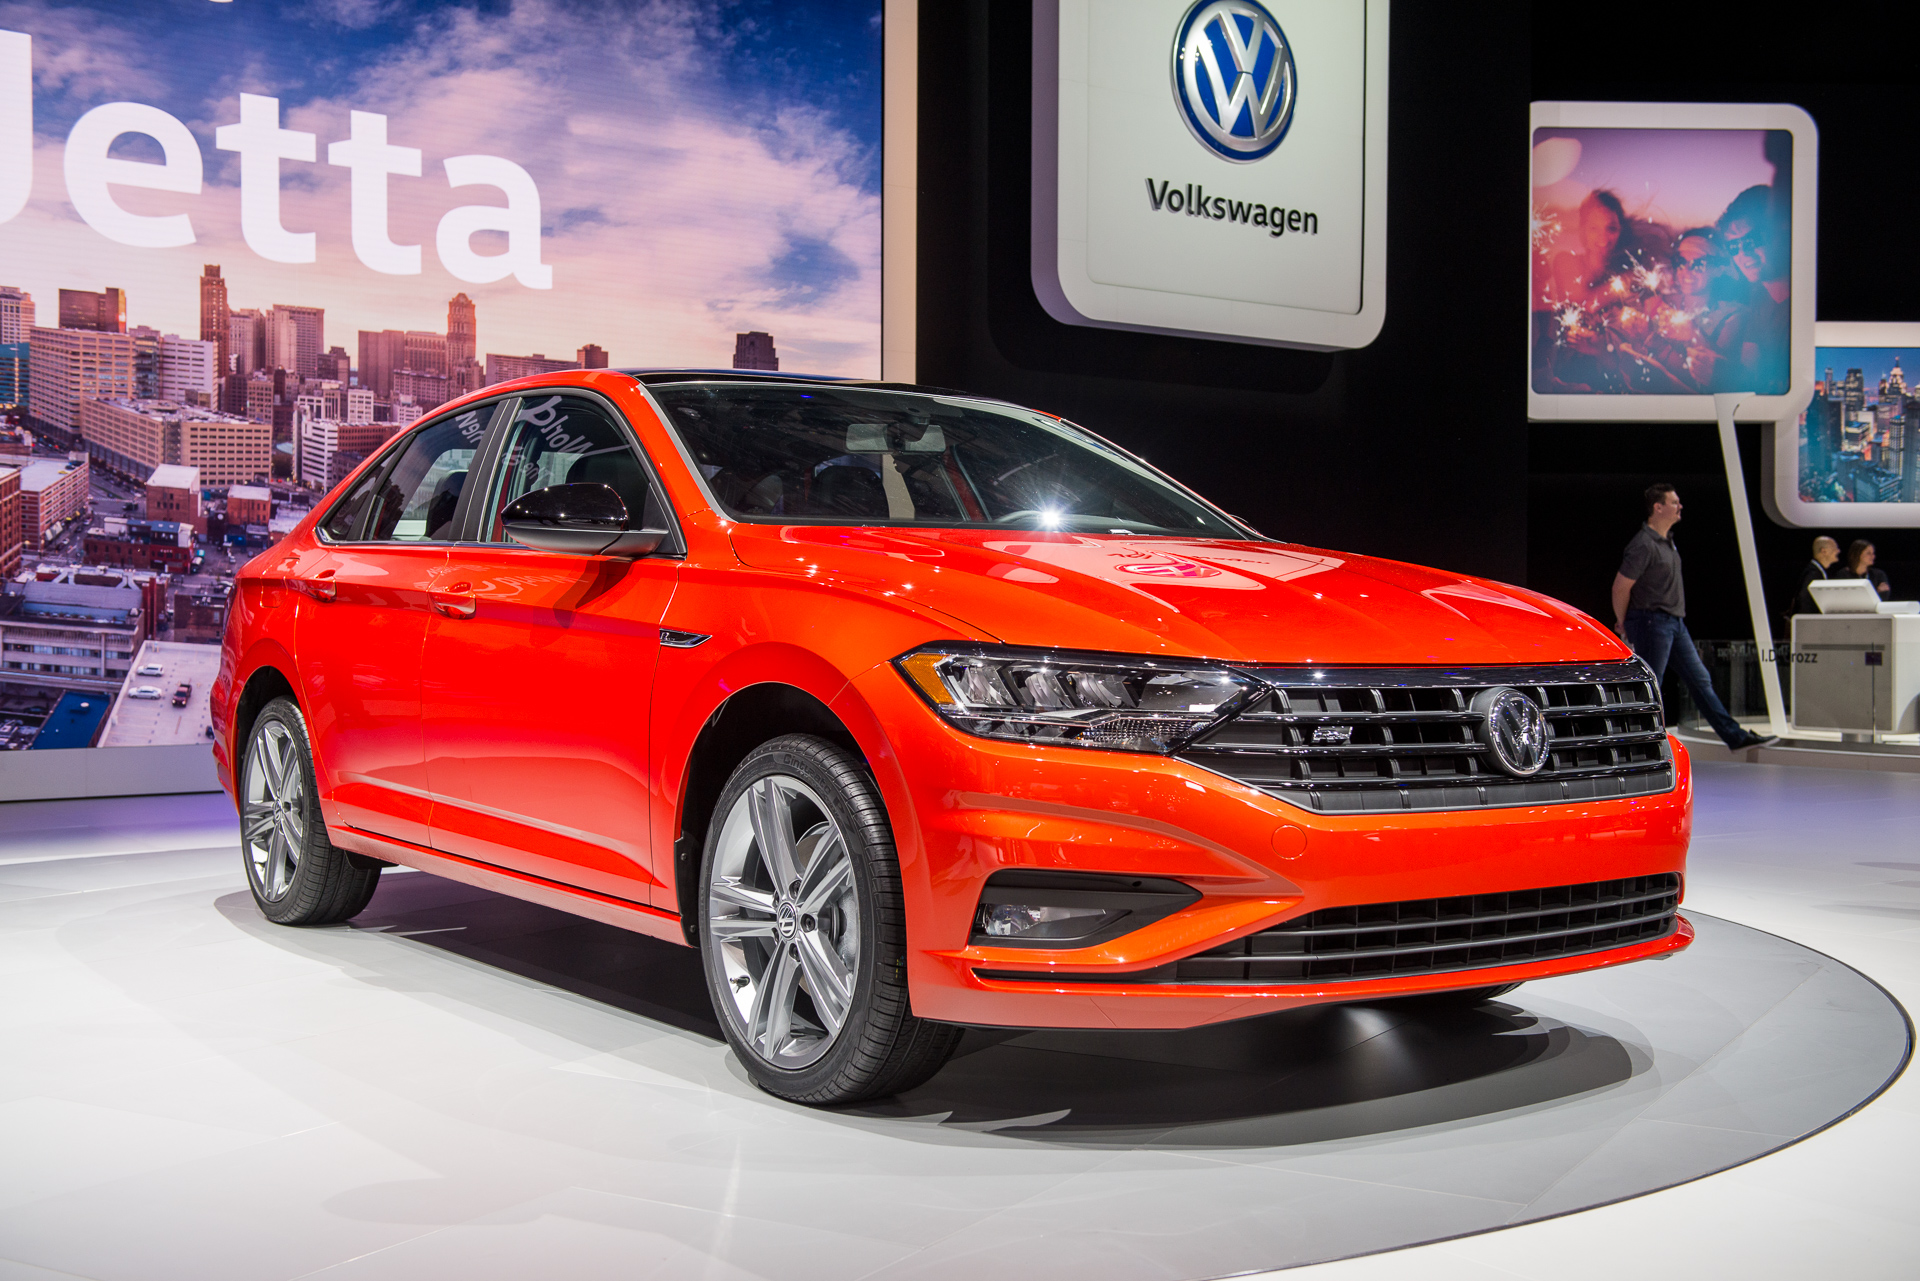 2019 volkswagen jetta revealed vw 39 s sedan hits the gym. Black Bedroom Furniture Sets. Home Design Ideas